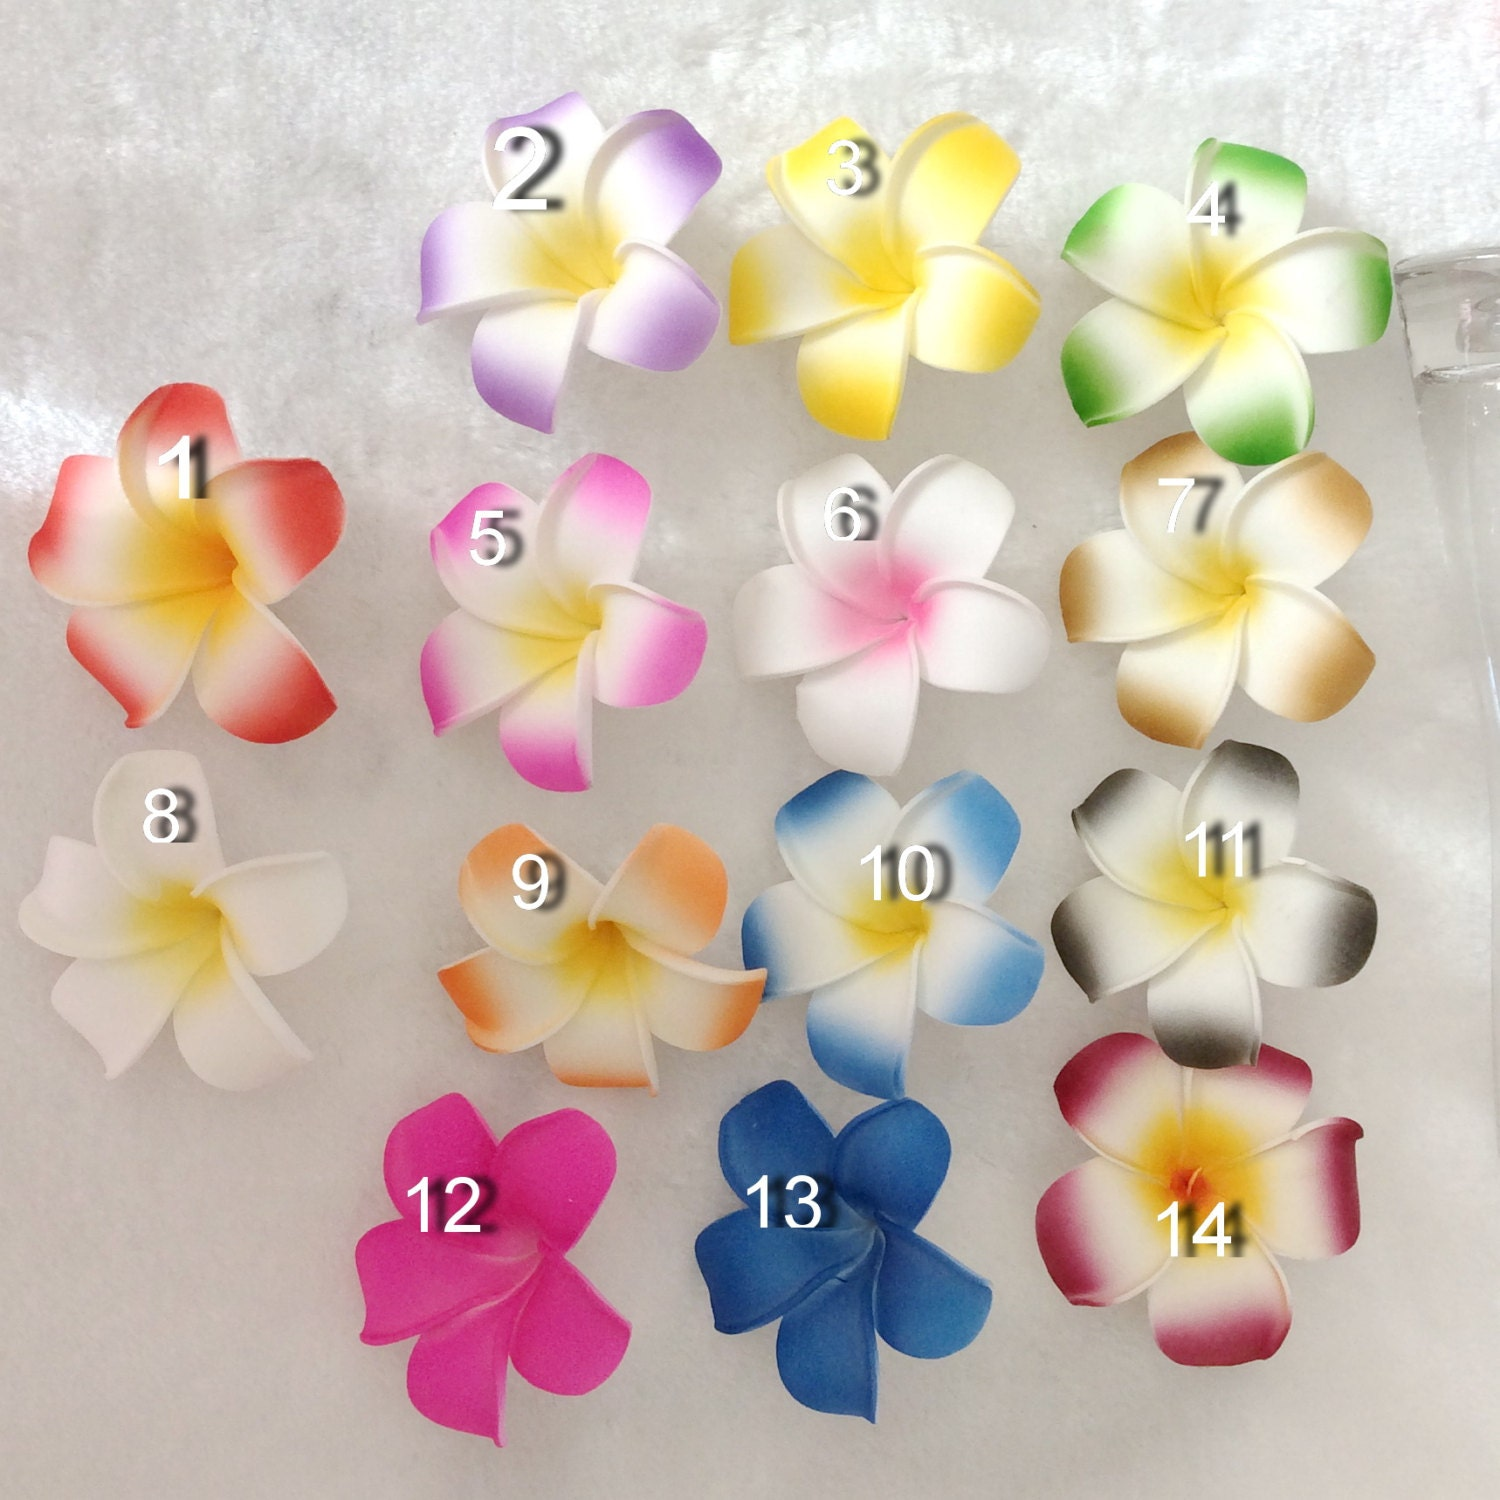 Foam Flowers Frangipani Plumeria Flowers 10pcs Various Colors Etsy